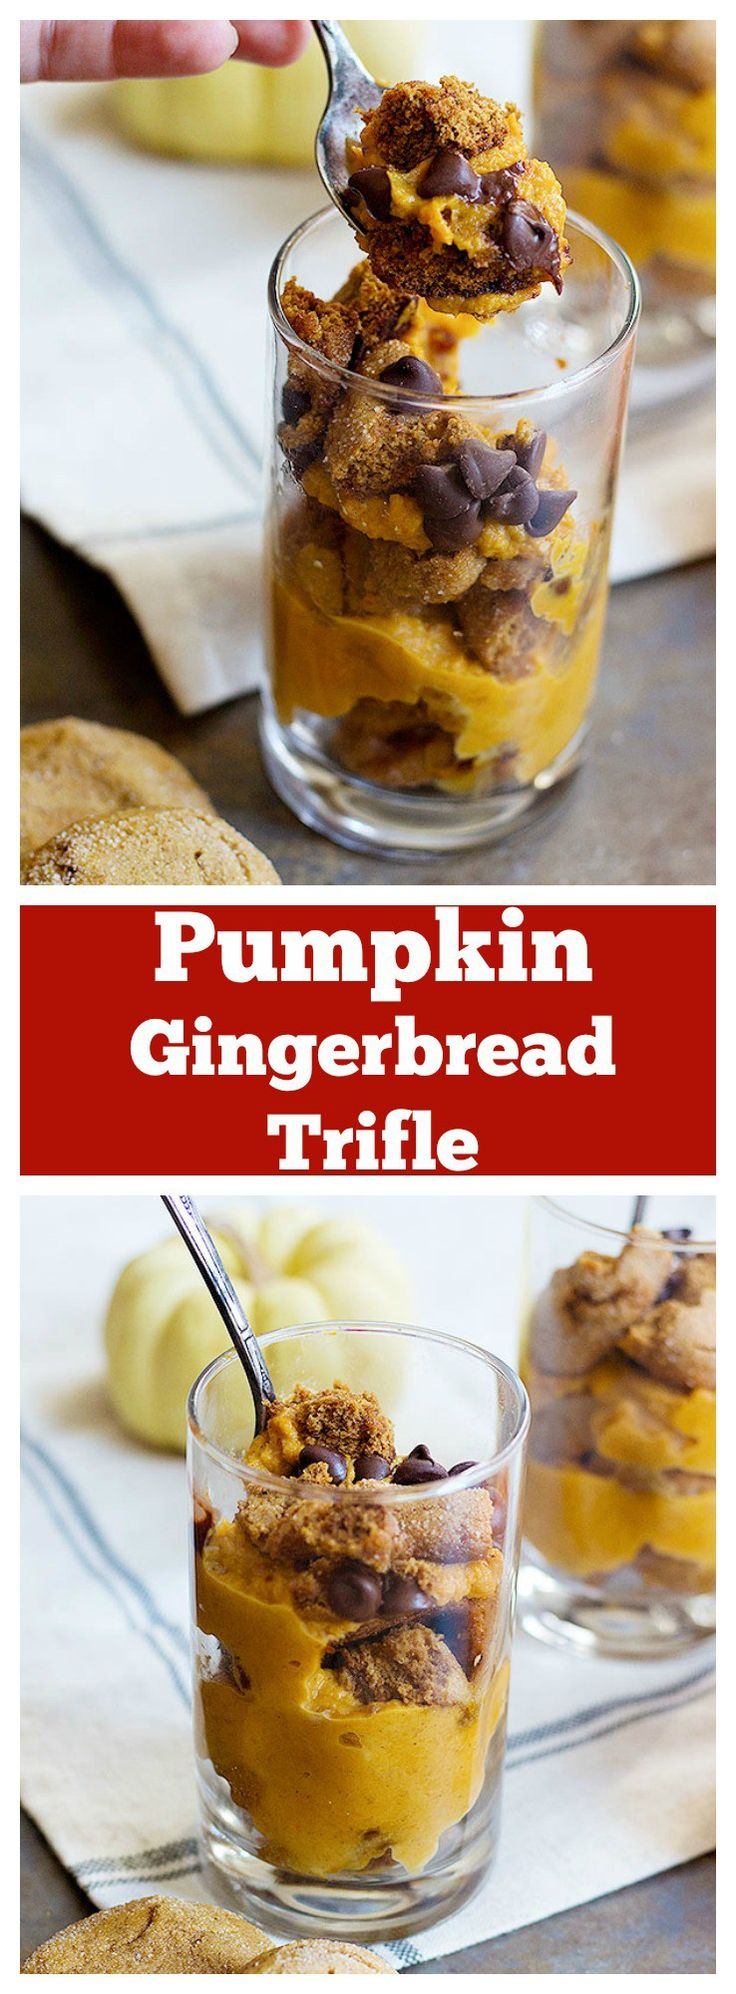 Pumpkin gingerbread trifle is an easy dessert you can make this holiday. It needs only a few ingredients, comes together in minutes and can be made in advance of your holiday gatherings! #BakeHolidayGoodness AD